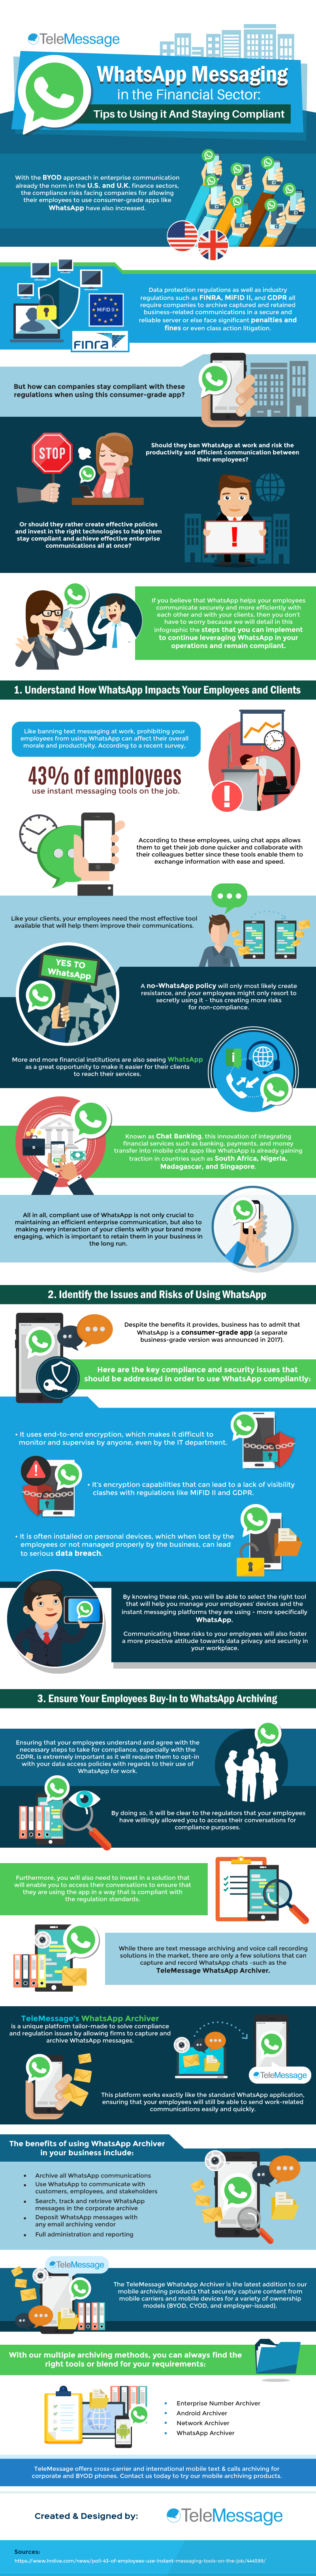 WhatsApp messaging in the financial sector